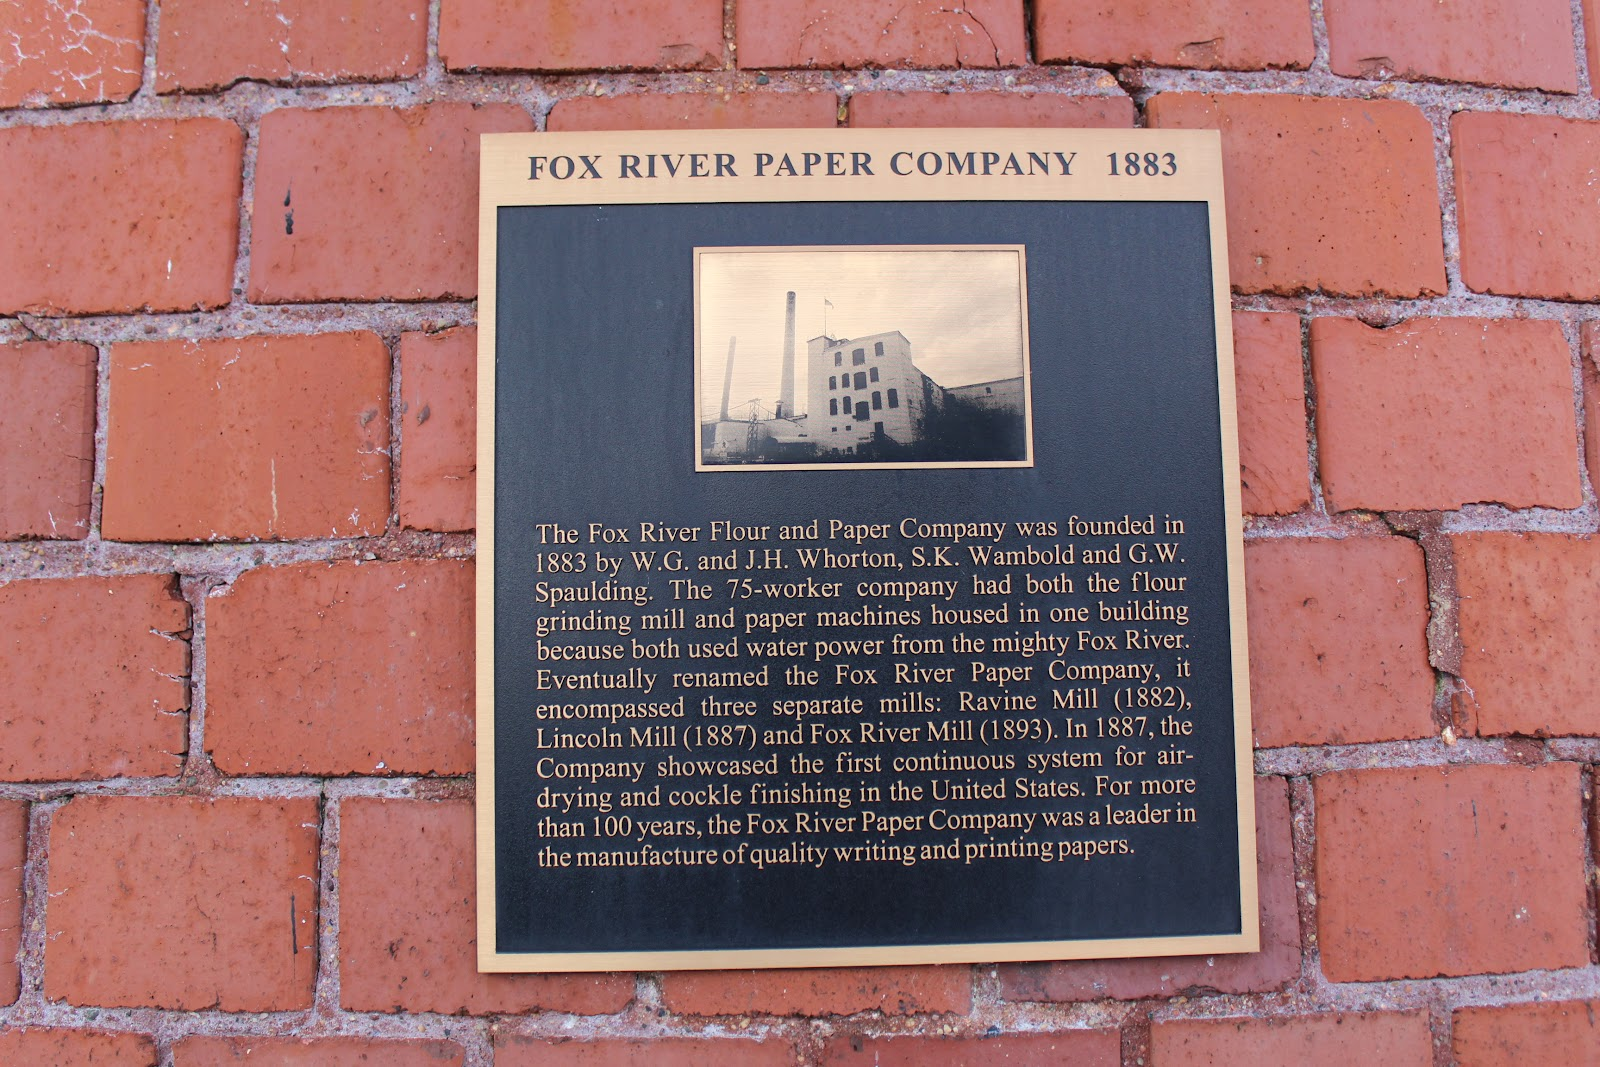 fox river paper Site 11: paper discovery center 425 w water st, appleton enjoy guided outside  eagle viewing on january 21 from 7:00 am to 3:00 pm at the paper discovery.